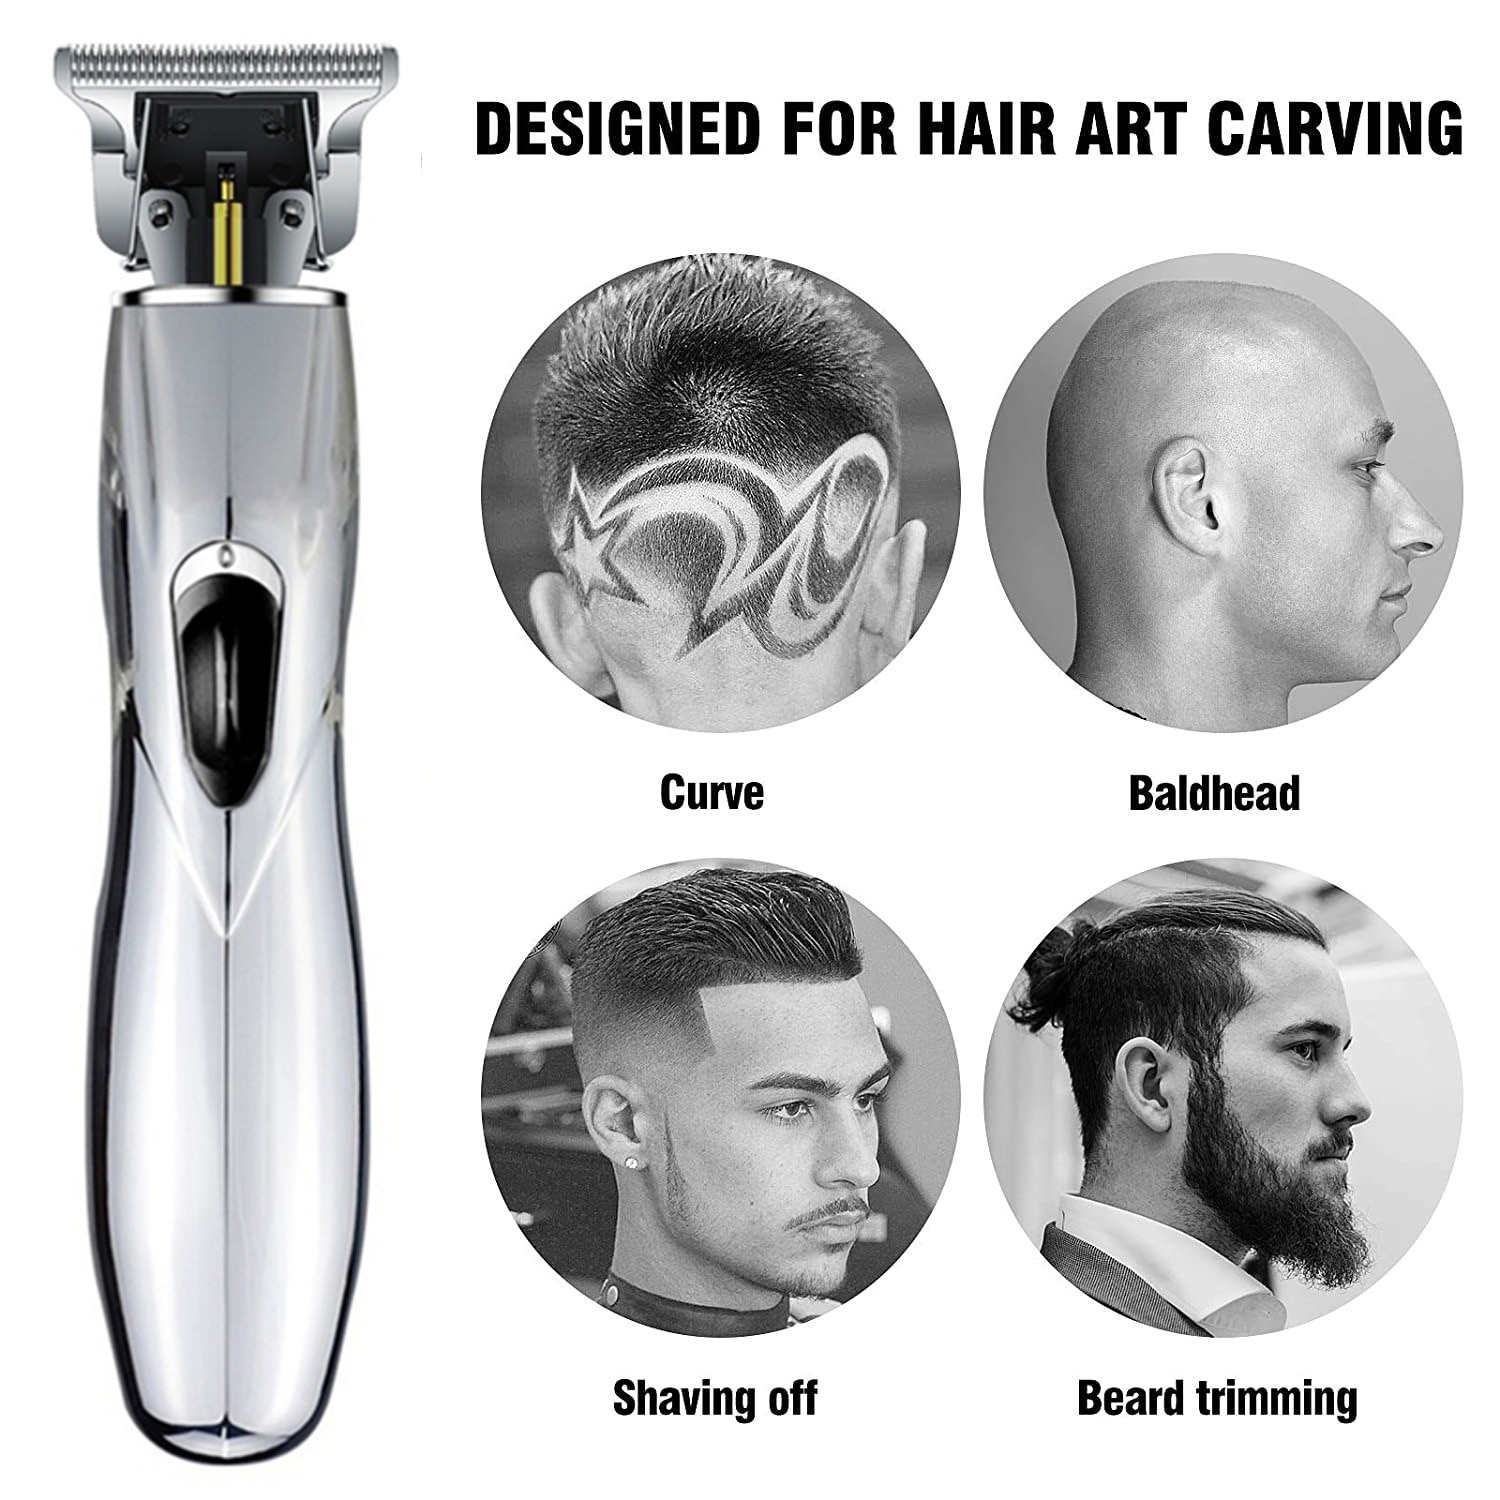 Retro Oil-Head Hair Clipper Professional Hair Trimmer for Men Adult Nick Carving Push White Shaved Head Home Barber Easy To Use enlarge